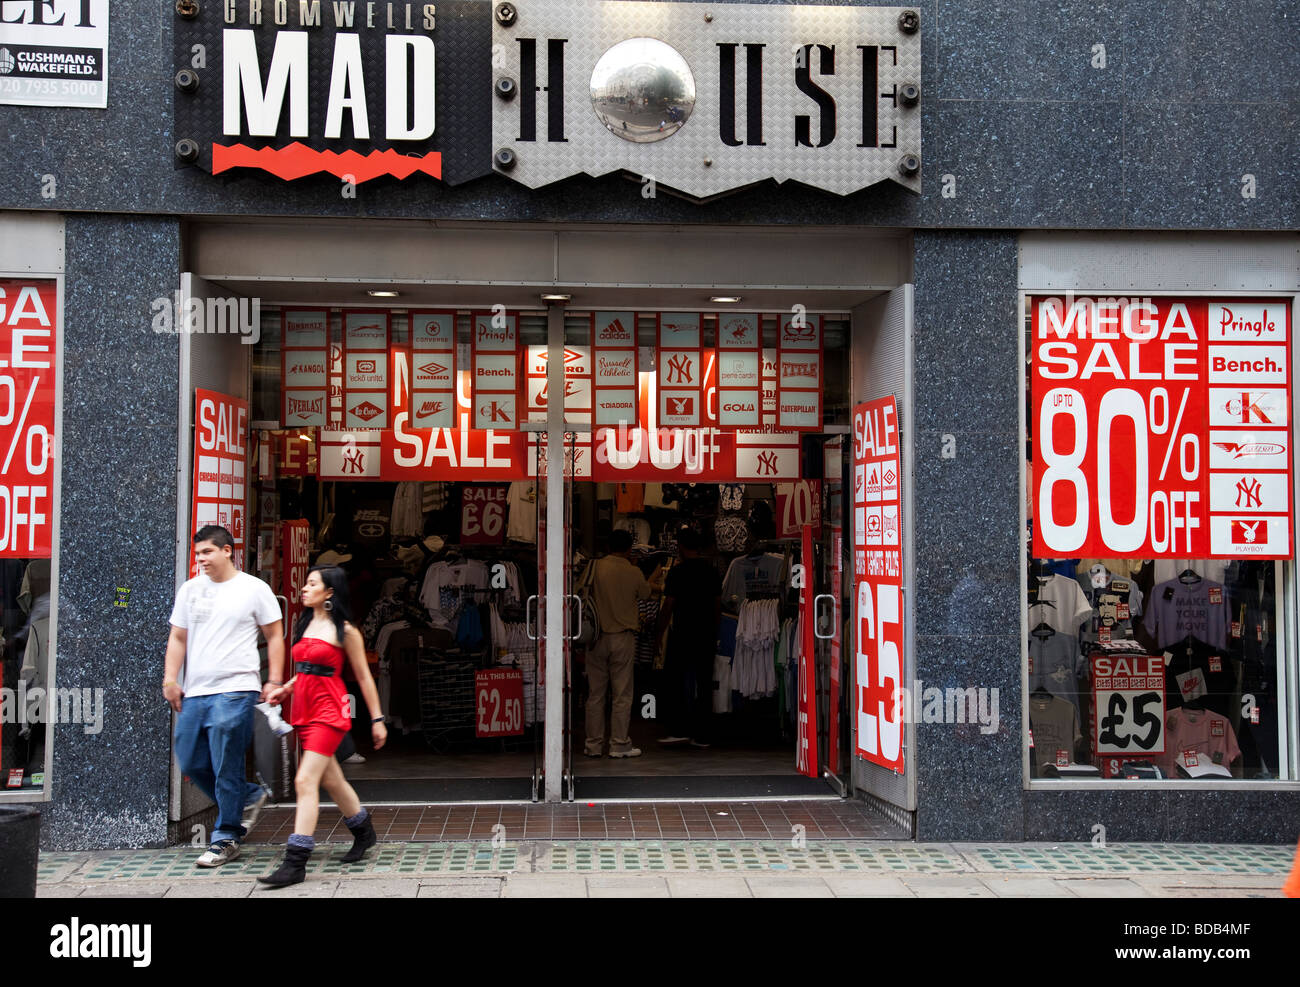 large windows for sale large bow sale signs in shop windows offer large reductions off retail goods on oxford street central london busy shopping area